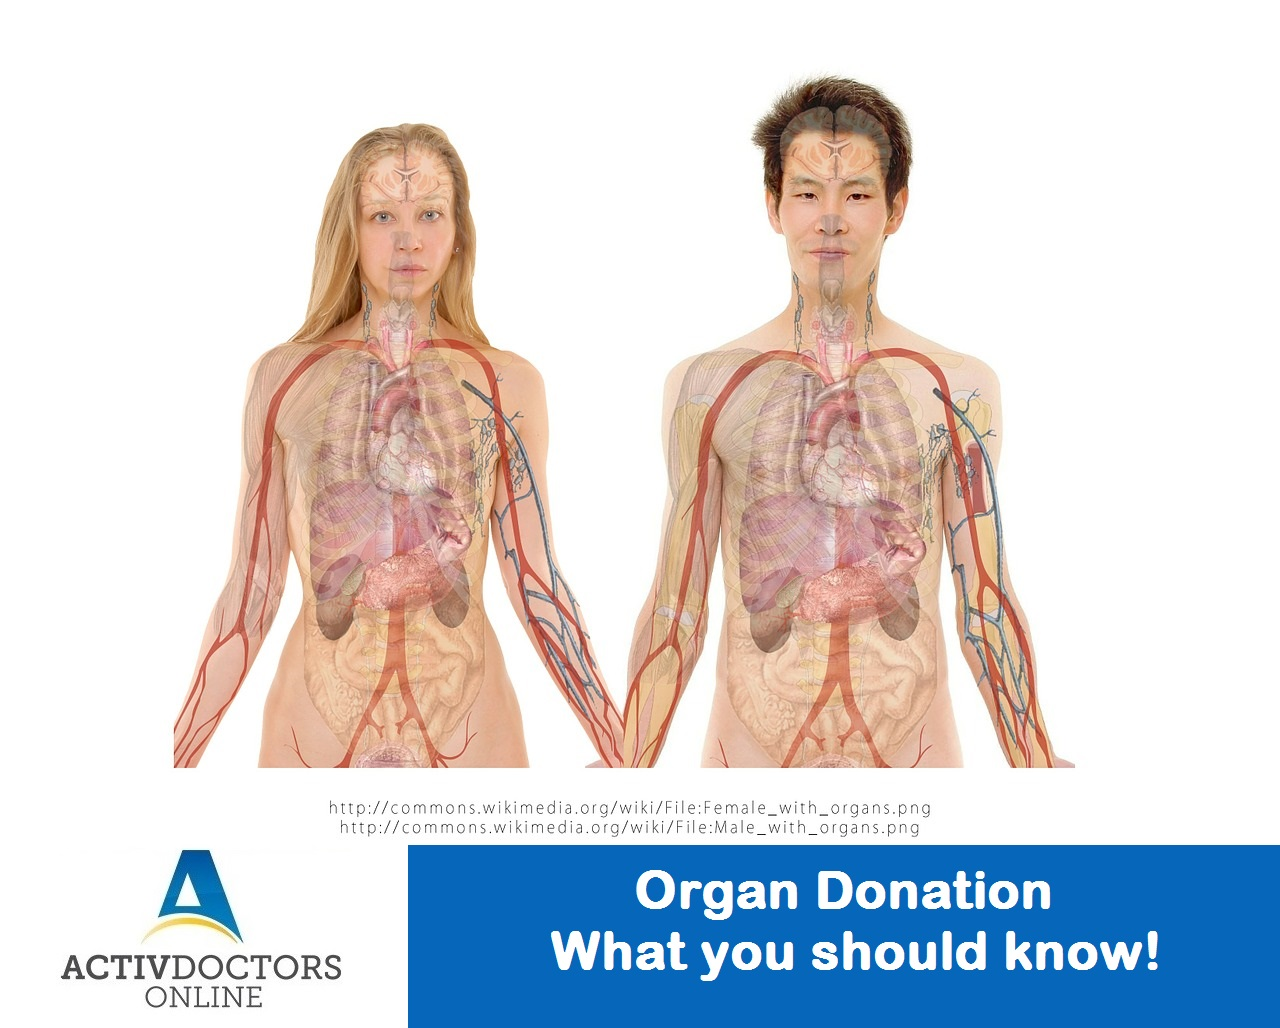 Organ Donation - What you should know!